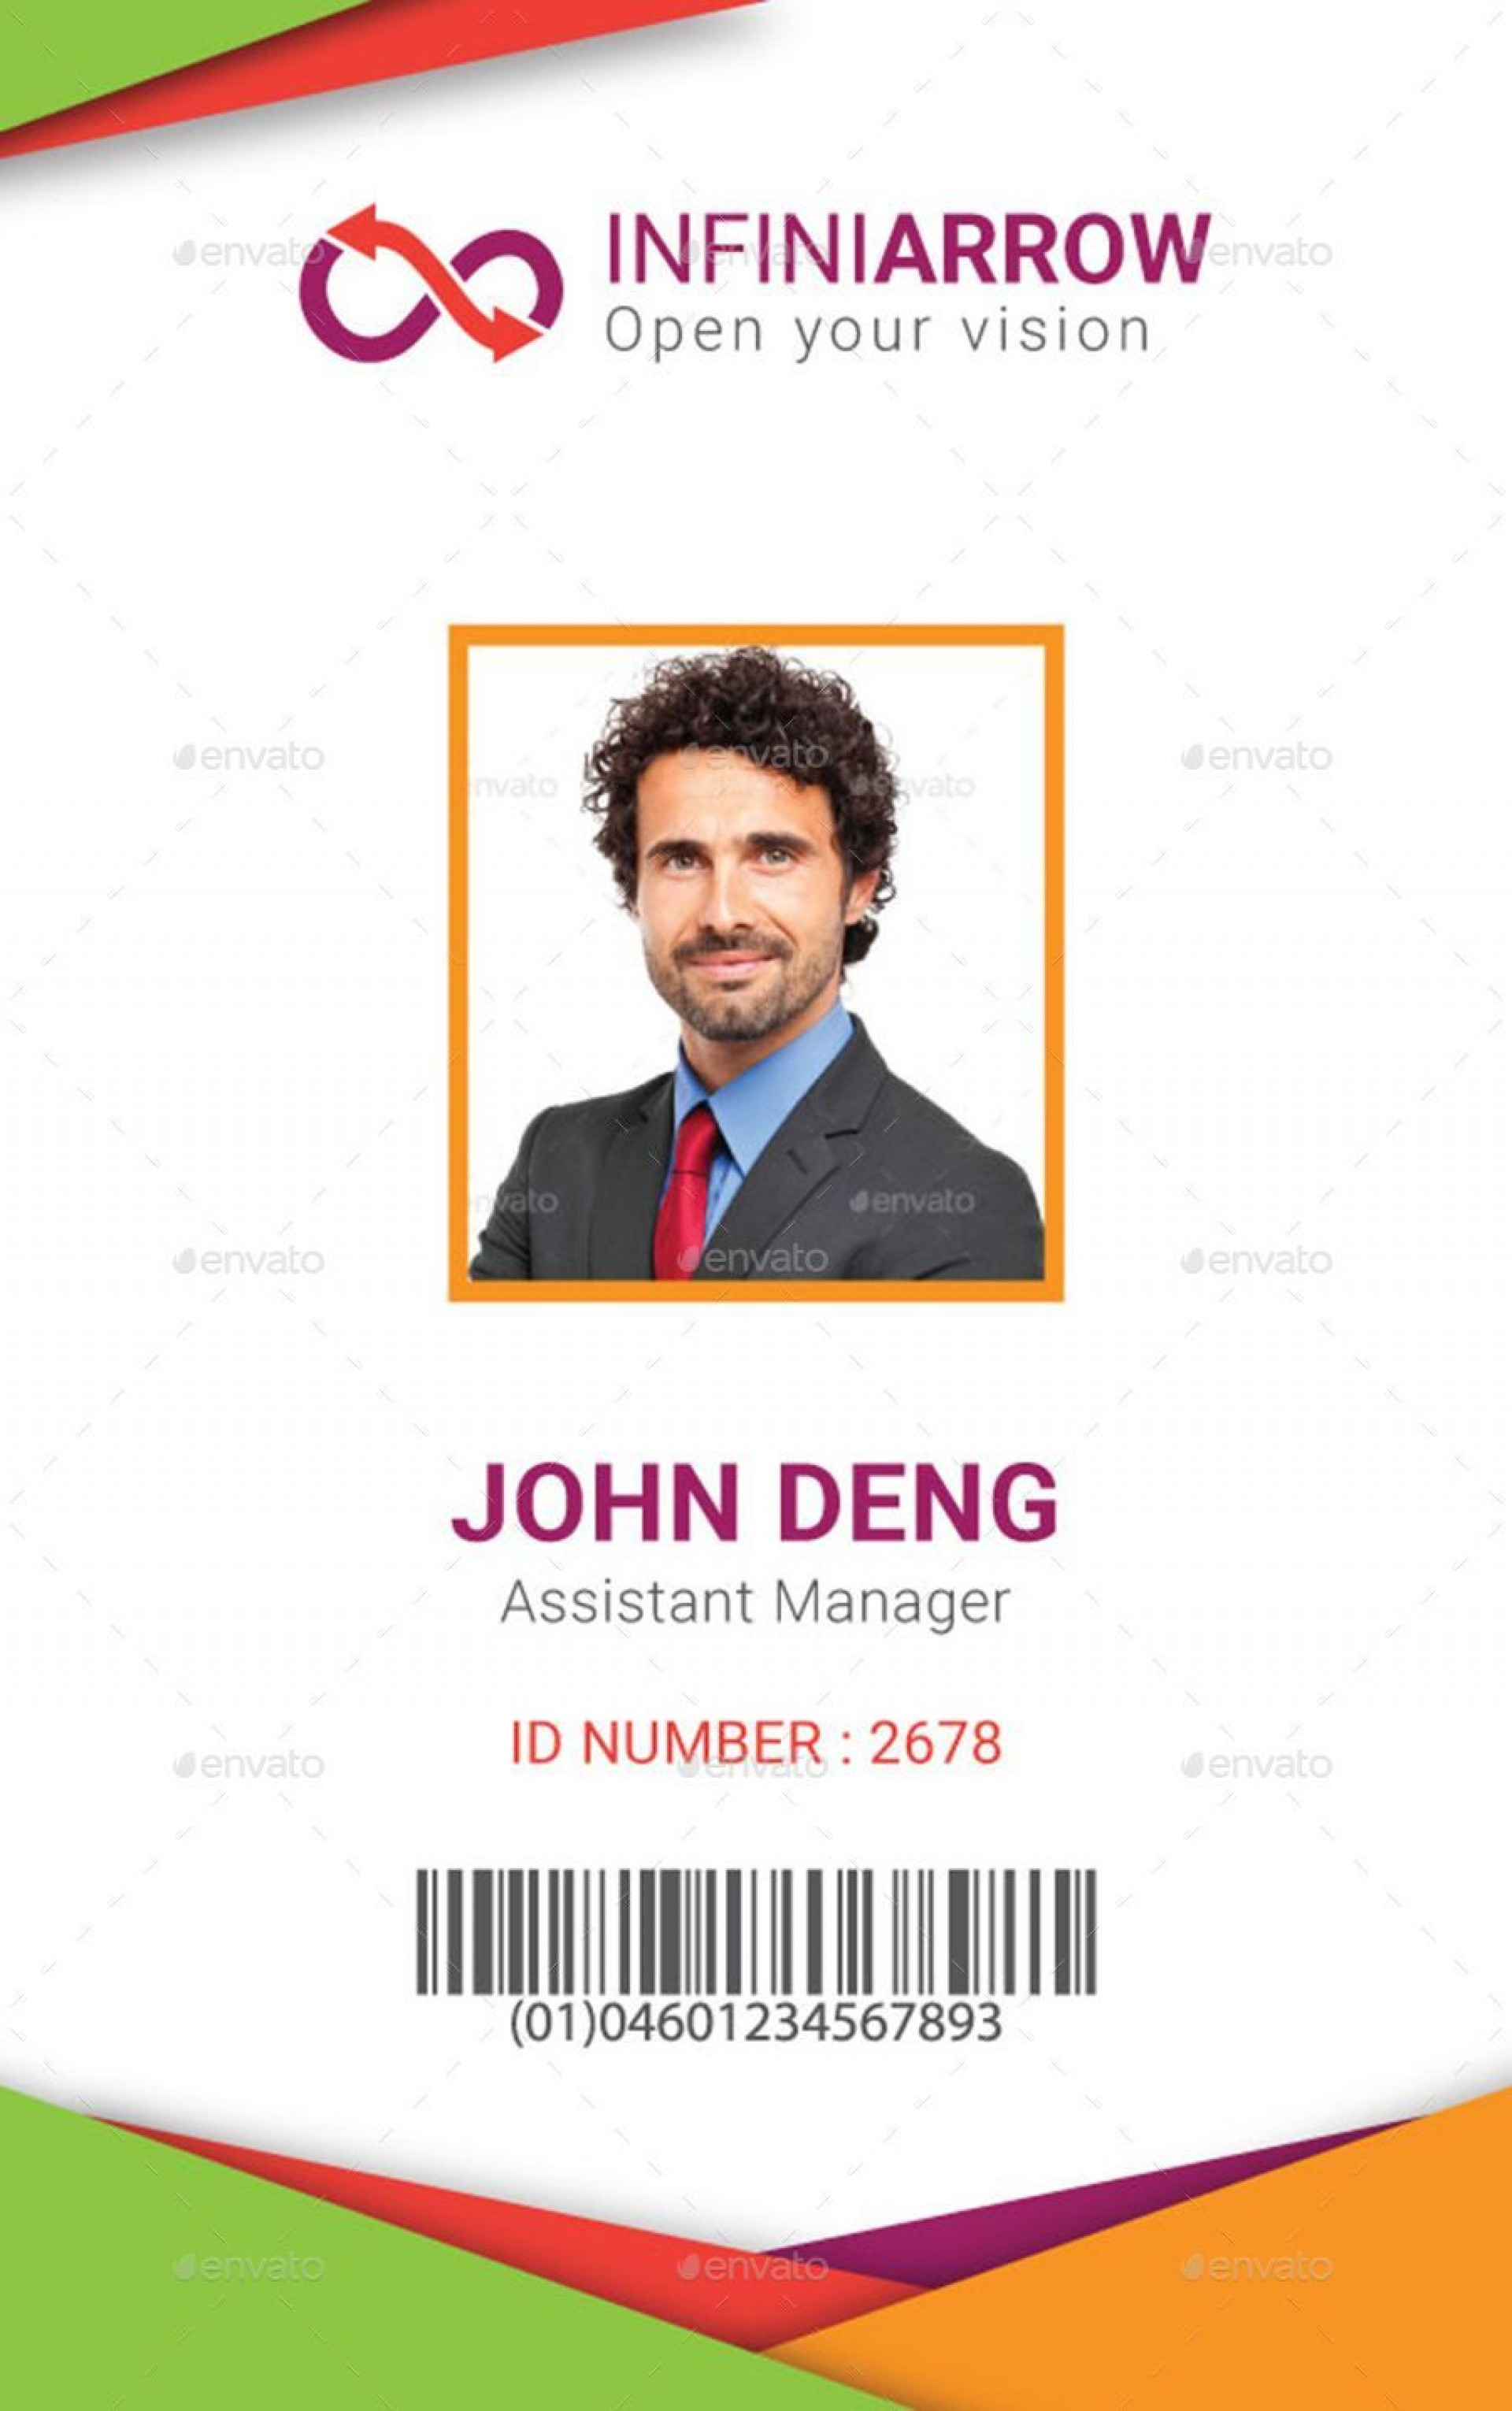 002 Stupendou Id Card Template Free Download Example  Design Photoshop Identity Student Word1920